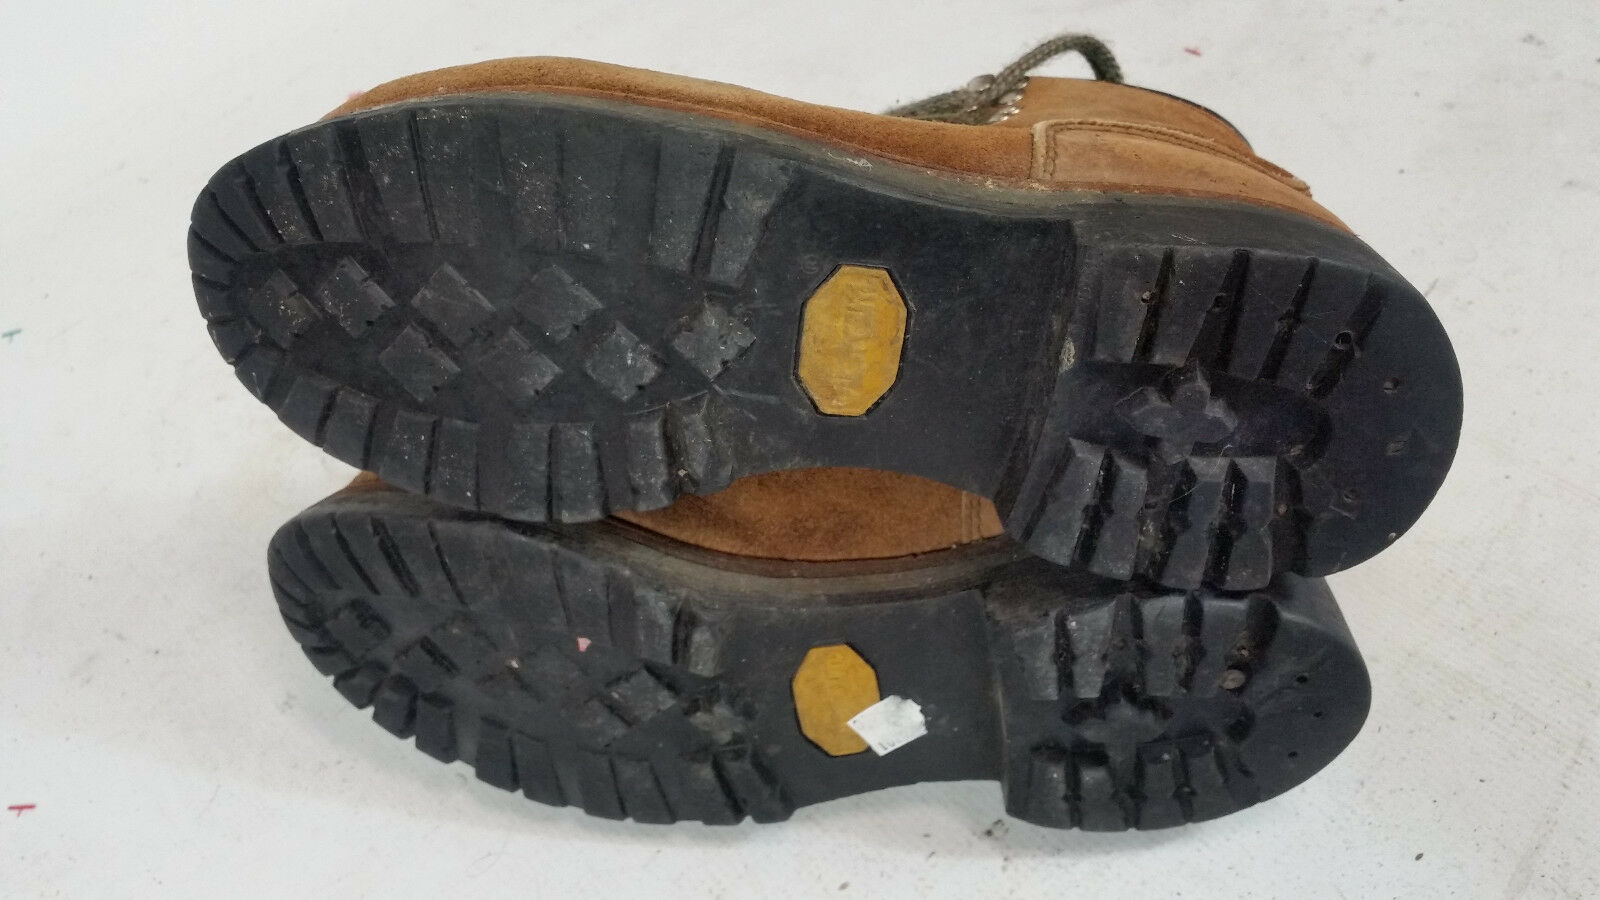 Vintage Vibram Hiking Mountaineering Vibram Vintage Rosso Wing Boots Uomo 7 M USA Leather Irish 300412